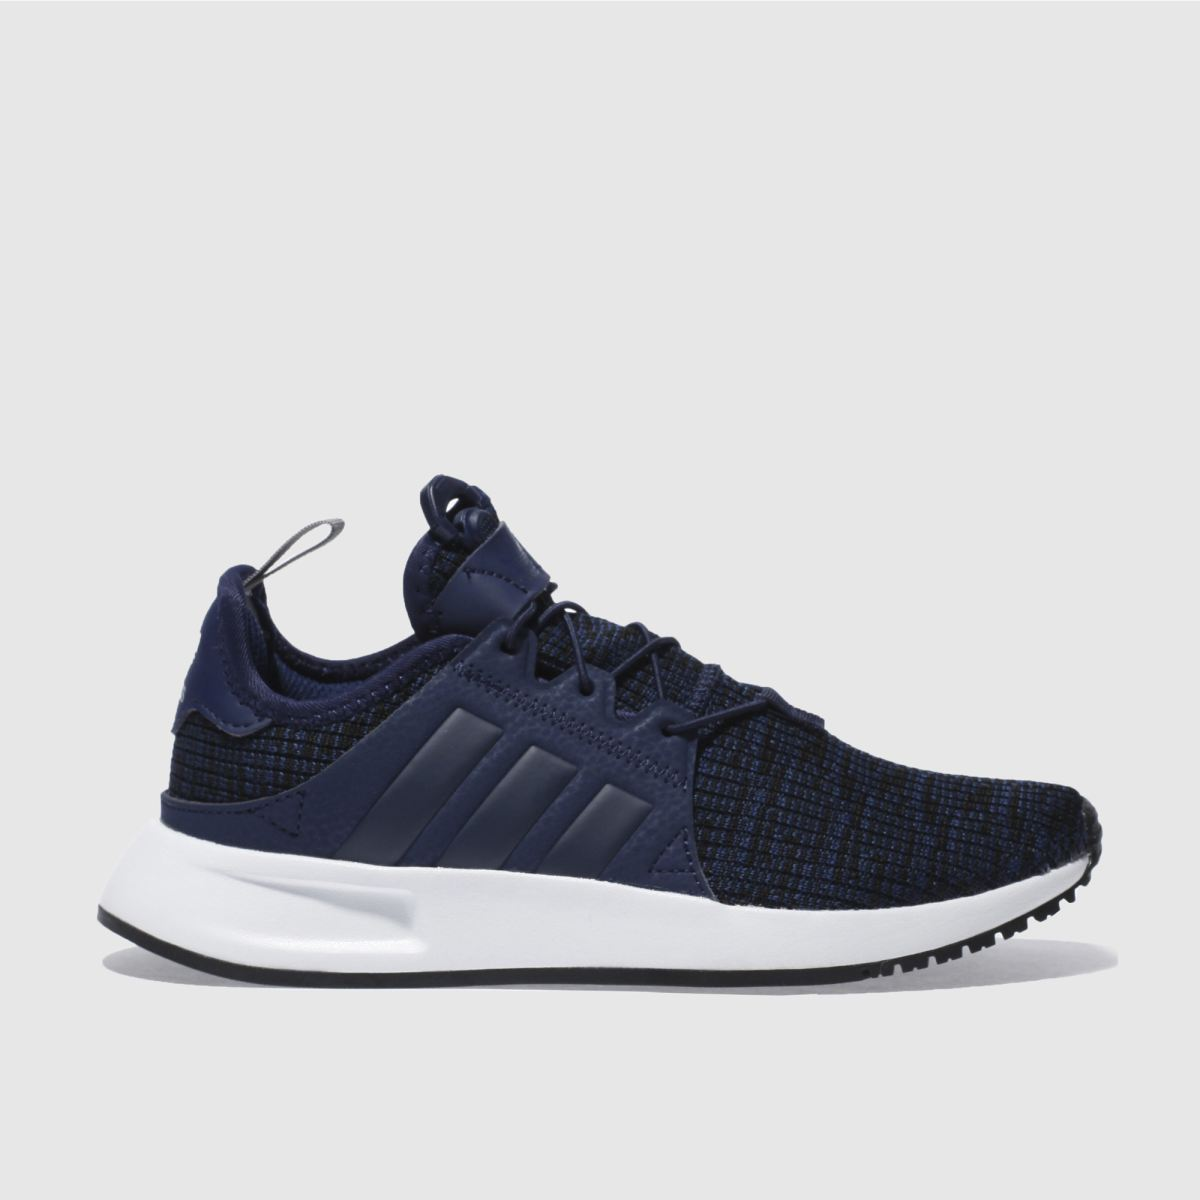 adidas navy x_plr c Boys Youth Trainers